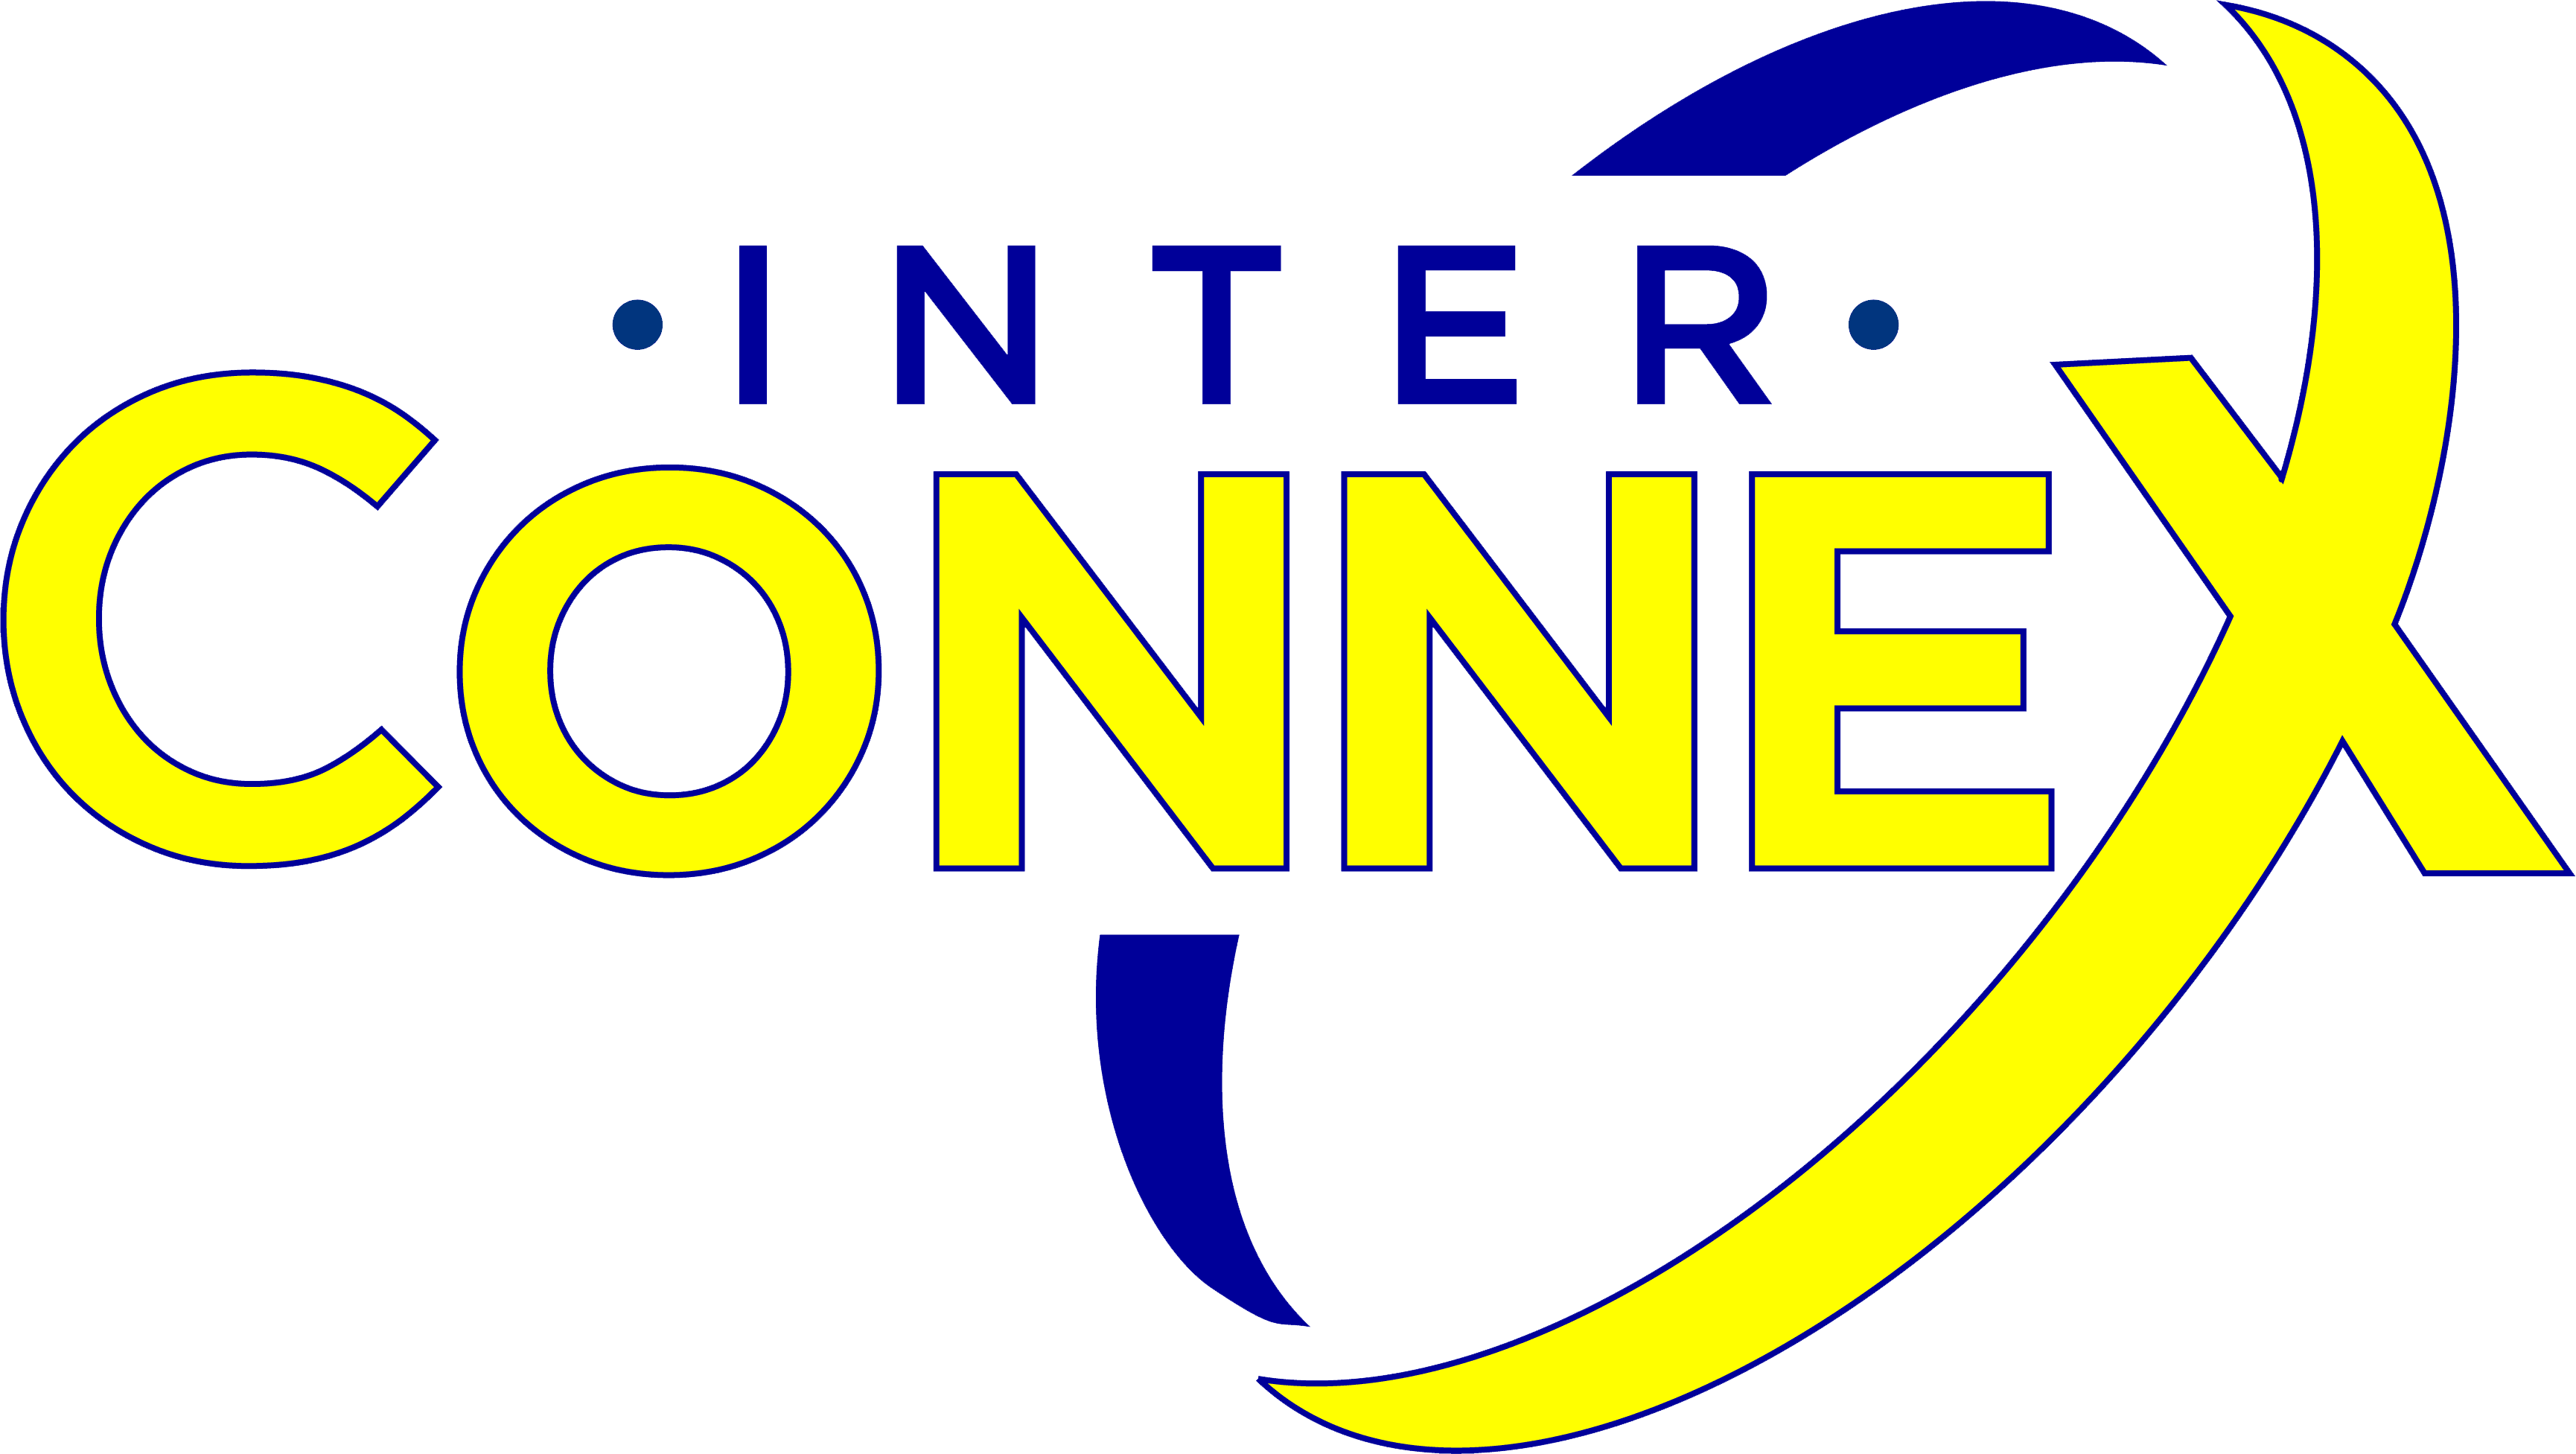 InterConneX logo